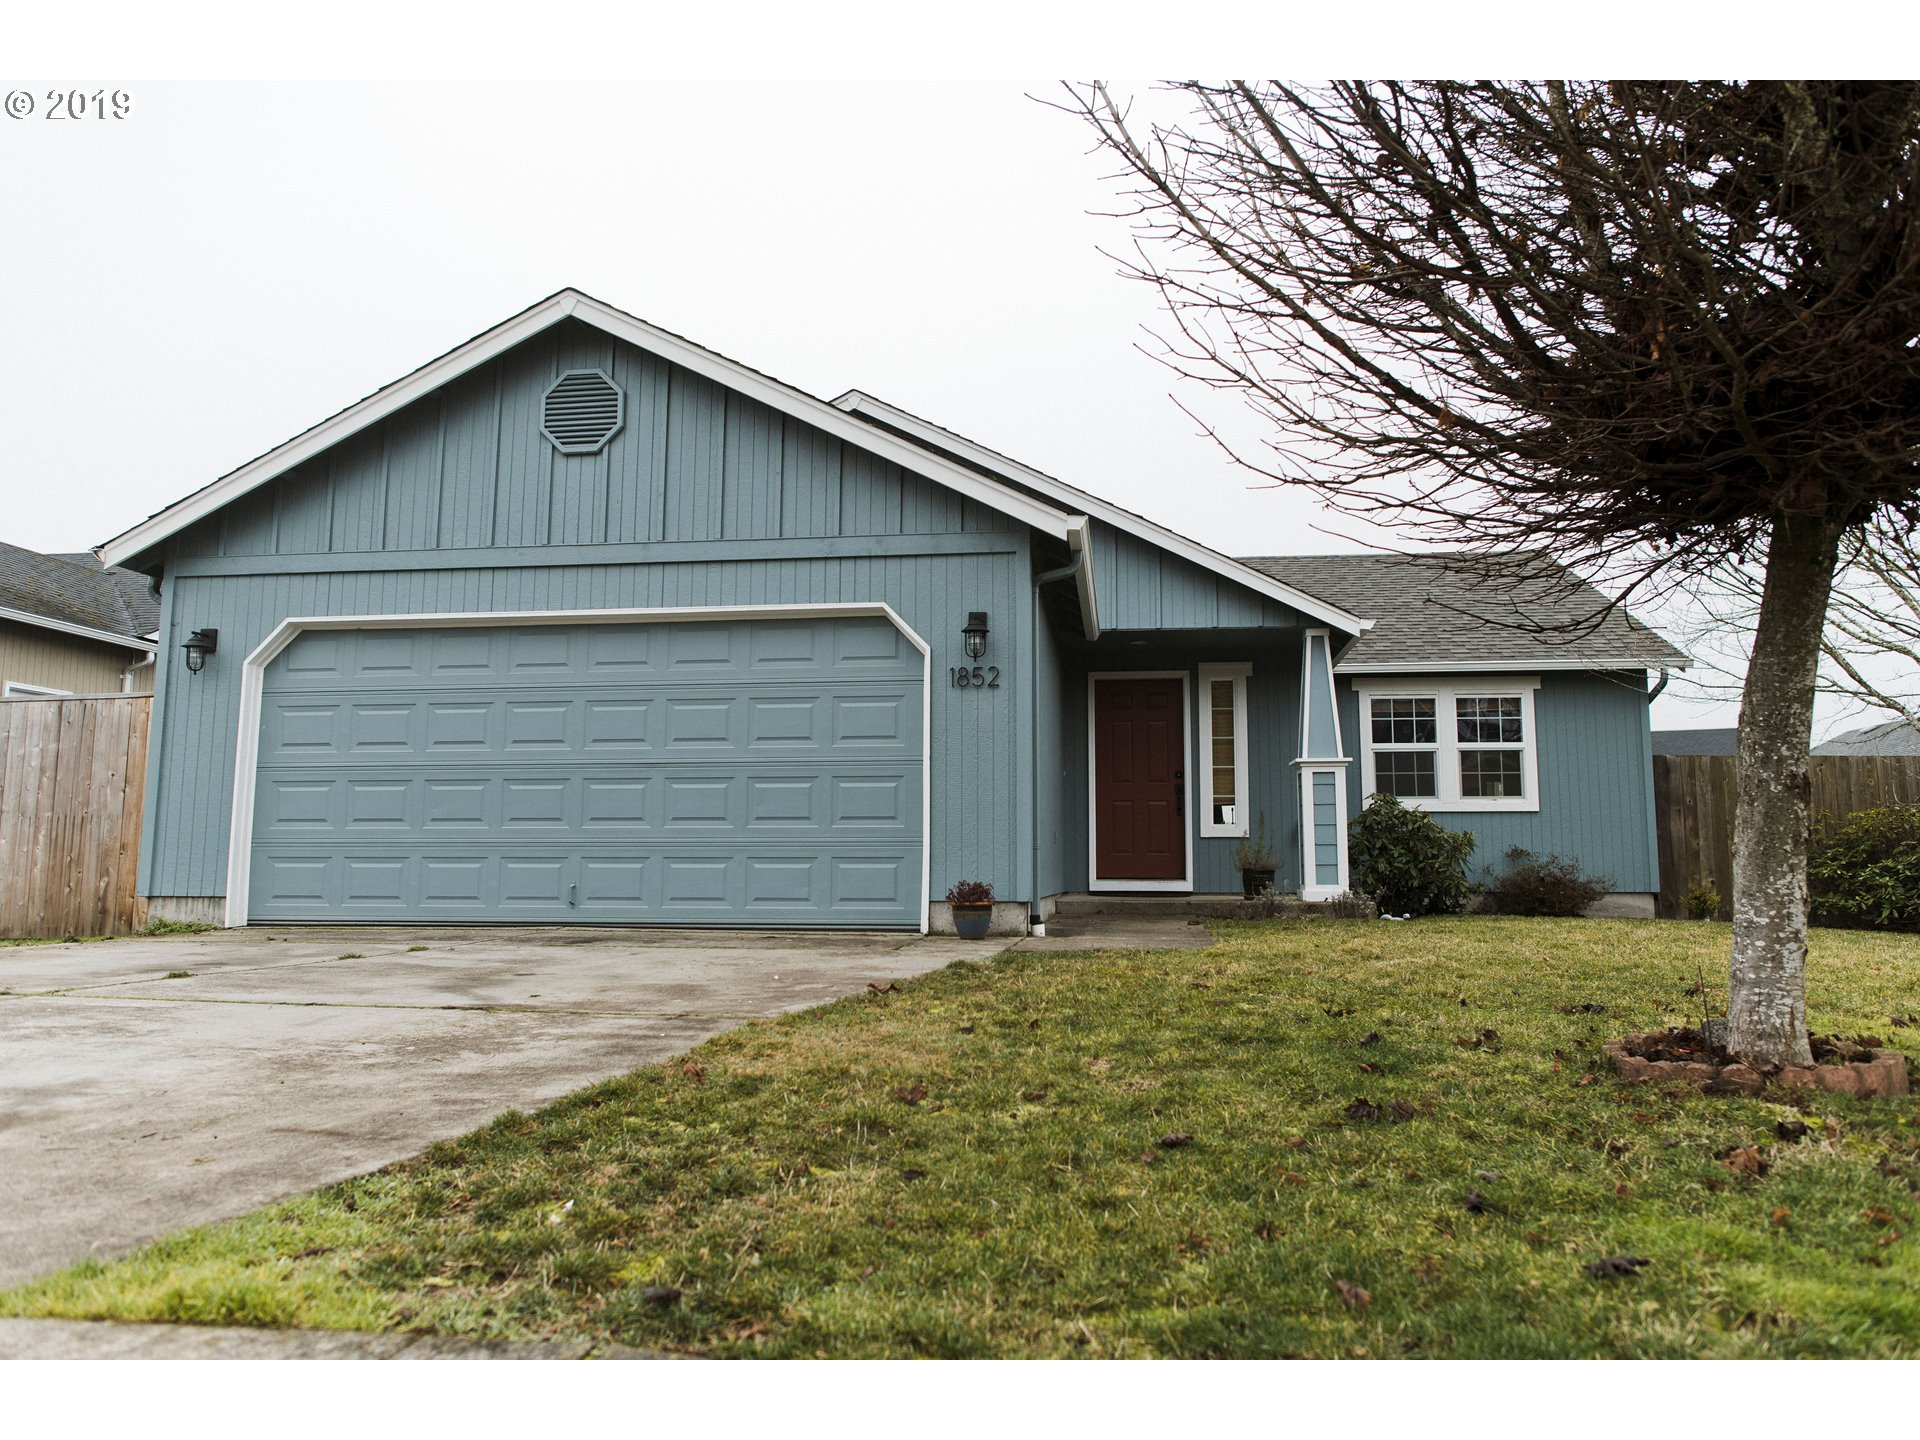 1852 S 60TH ST, Springfield OR 97478